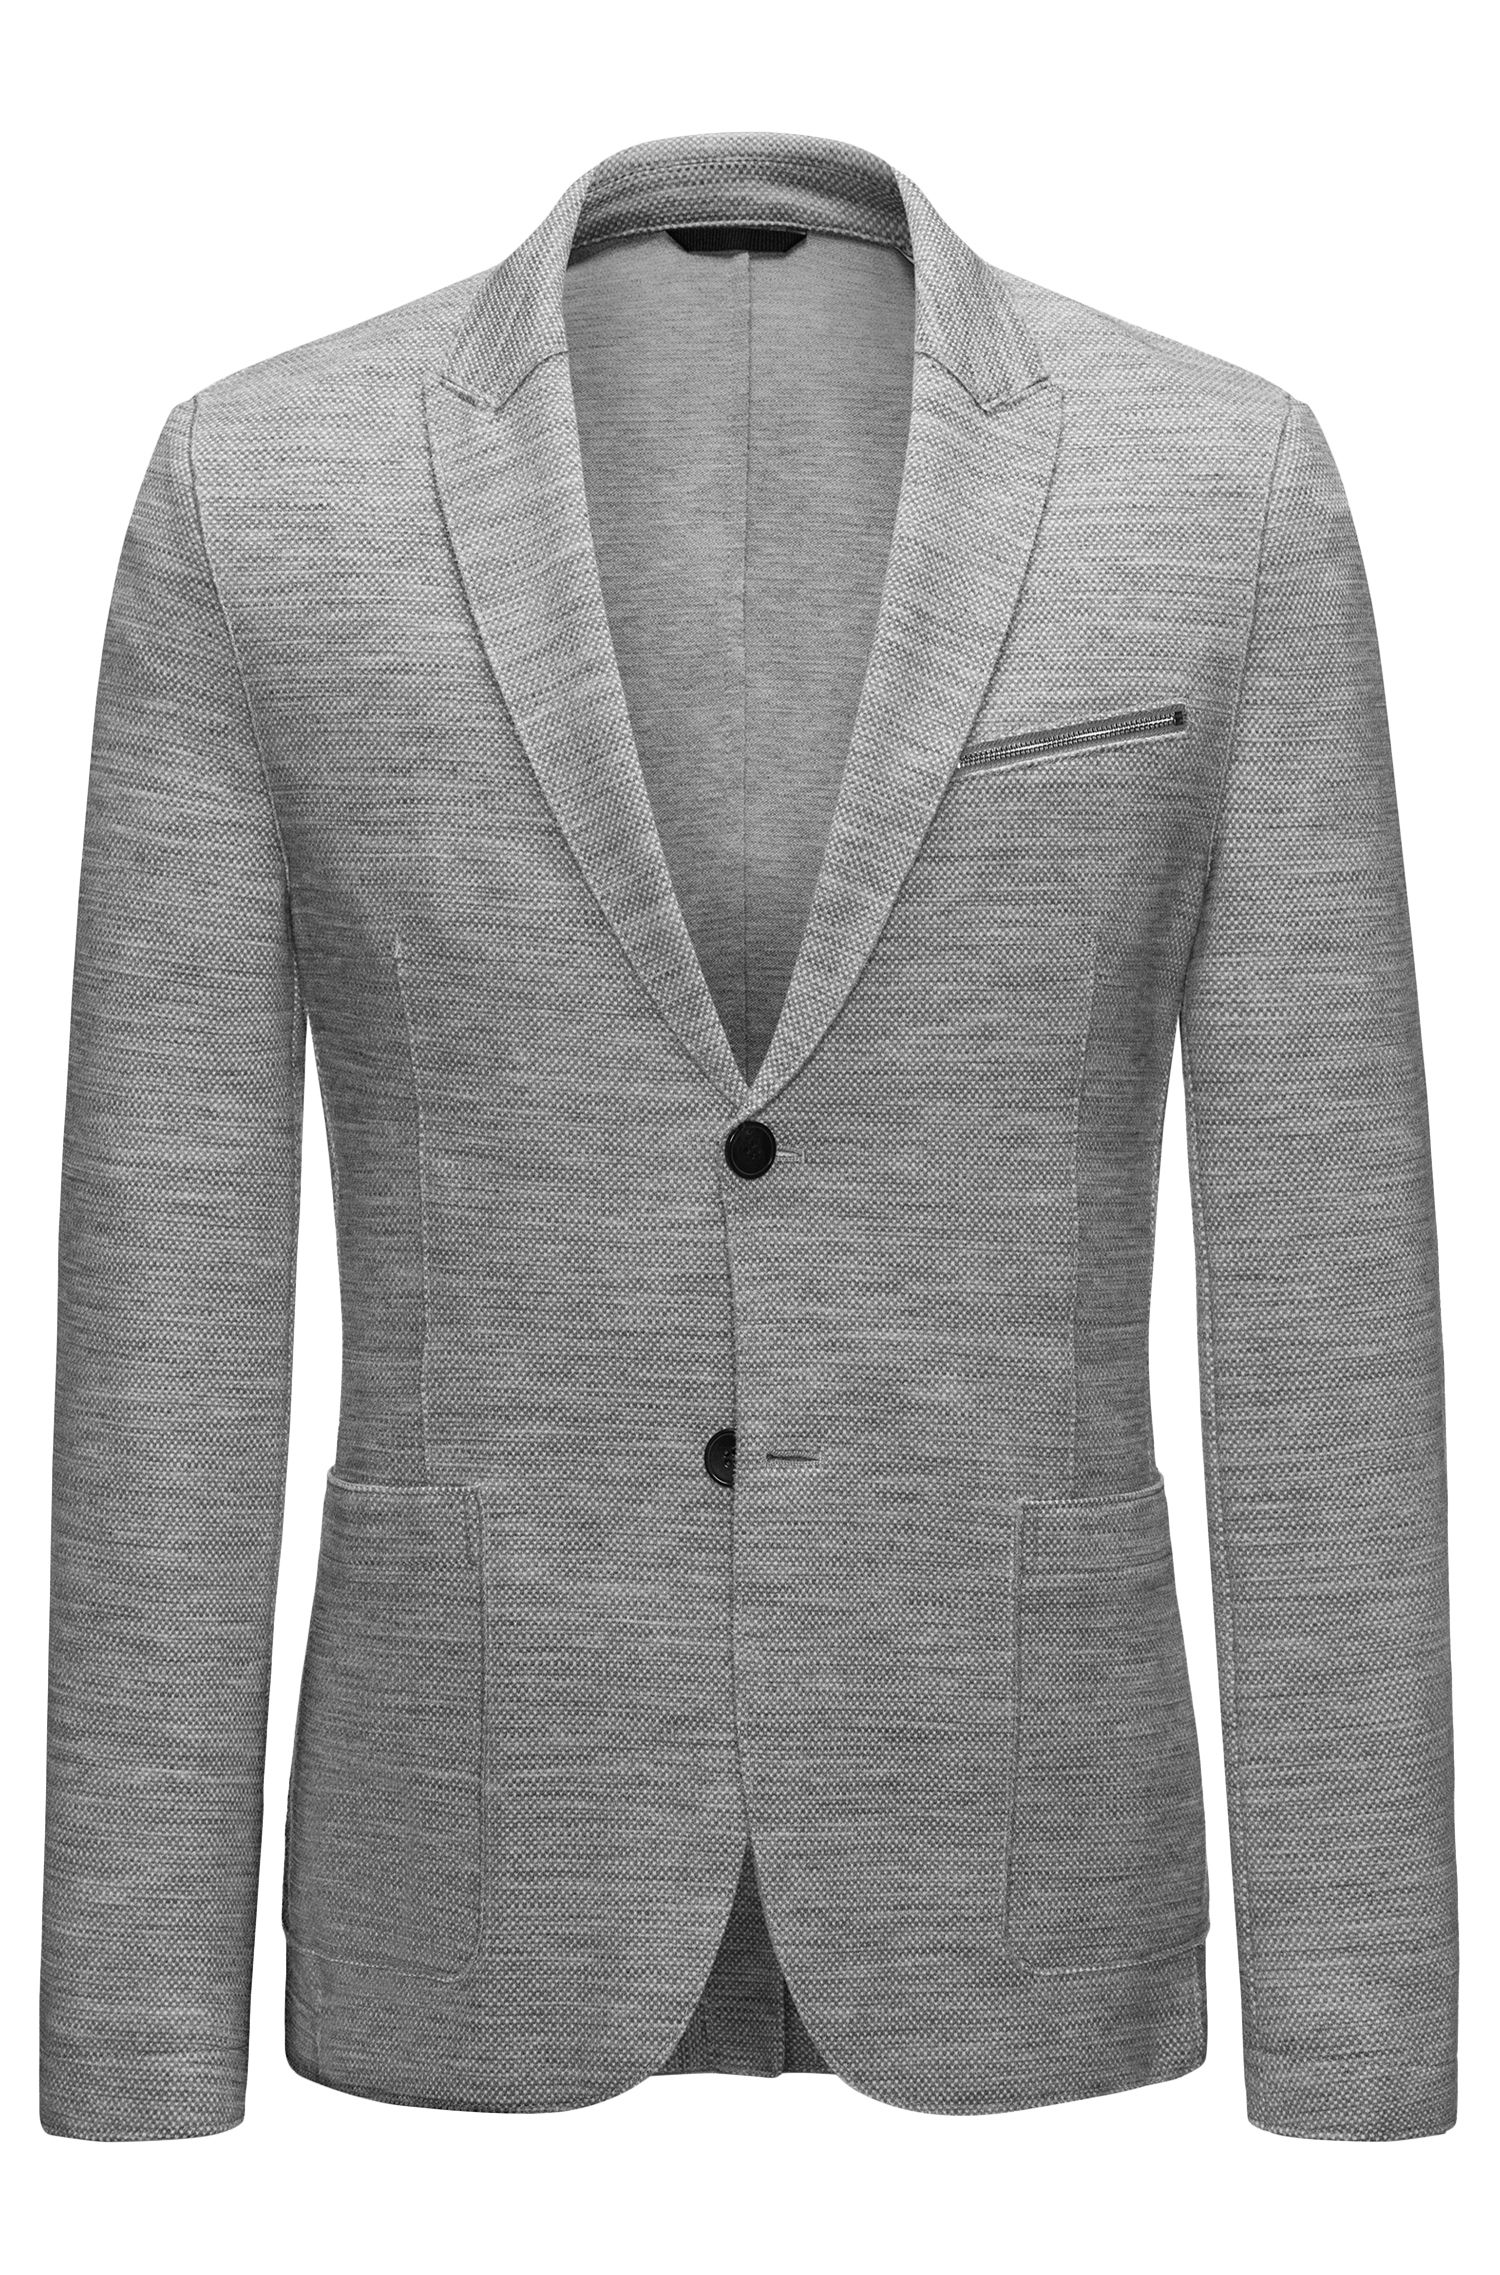 Wool Blend Sport Coat, Slim Fit | Aprino, Grey